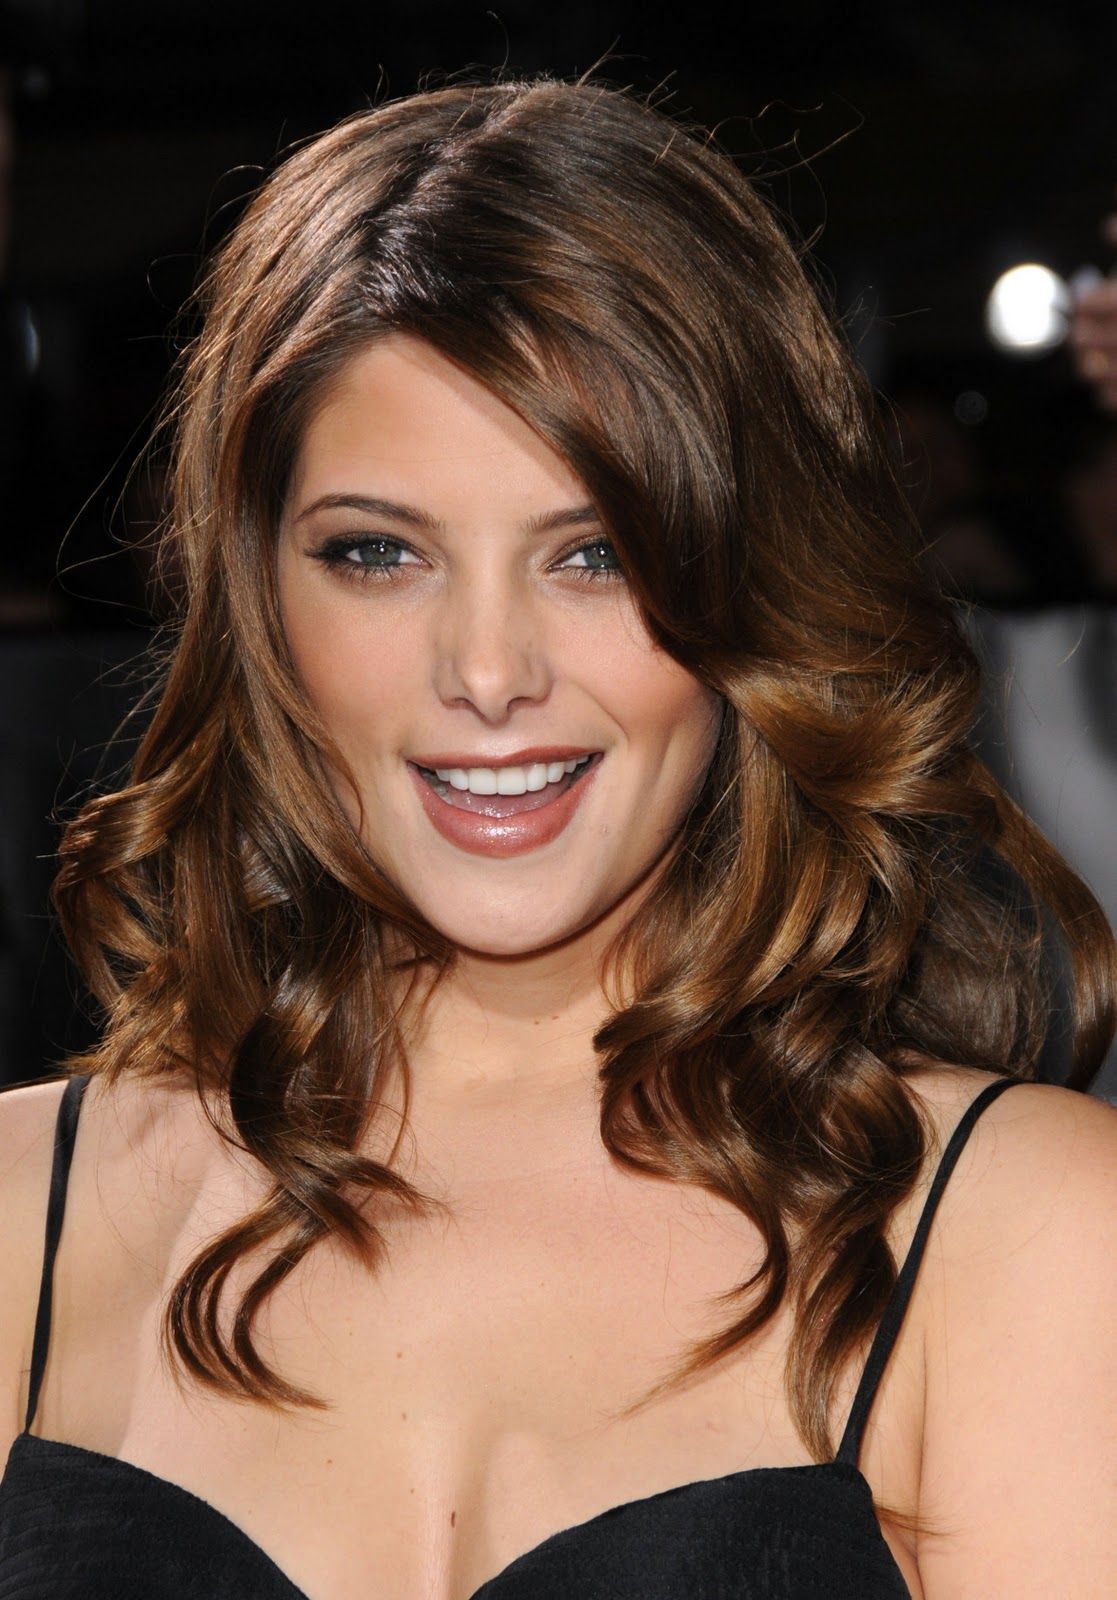 http://2.bp.blogspot.com/_uZ1aNXJOTeY/TOy5Ur6EOYI/AAAAAAAAACE/OQewm4UpR7I/s1600/ashley-greene-1169533.jpg